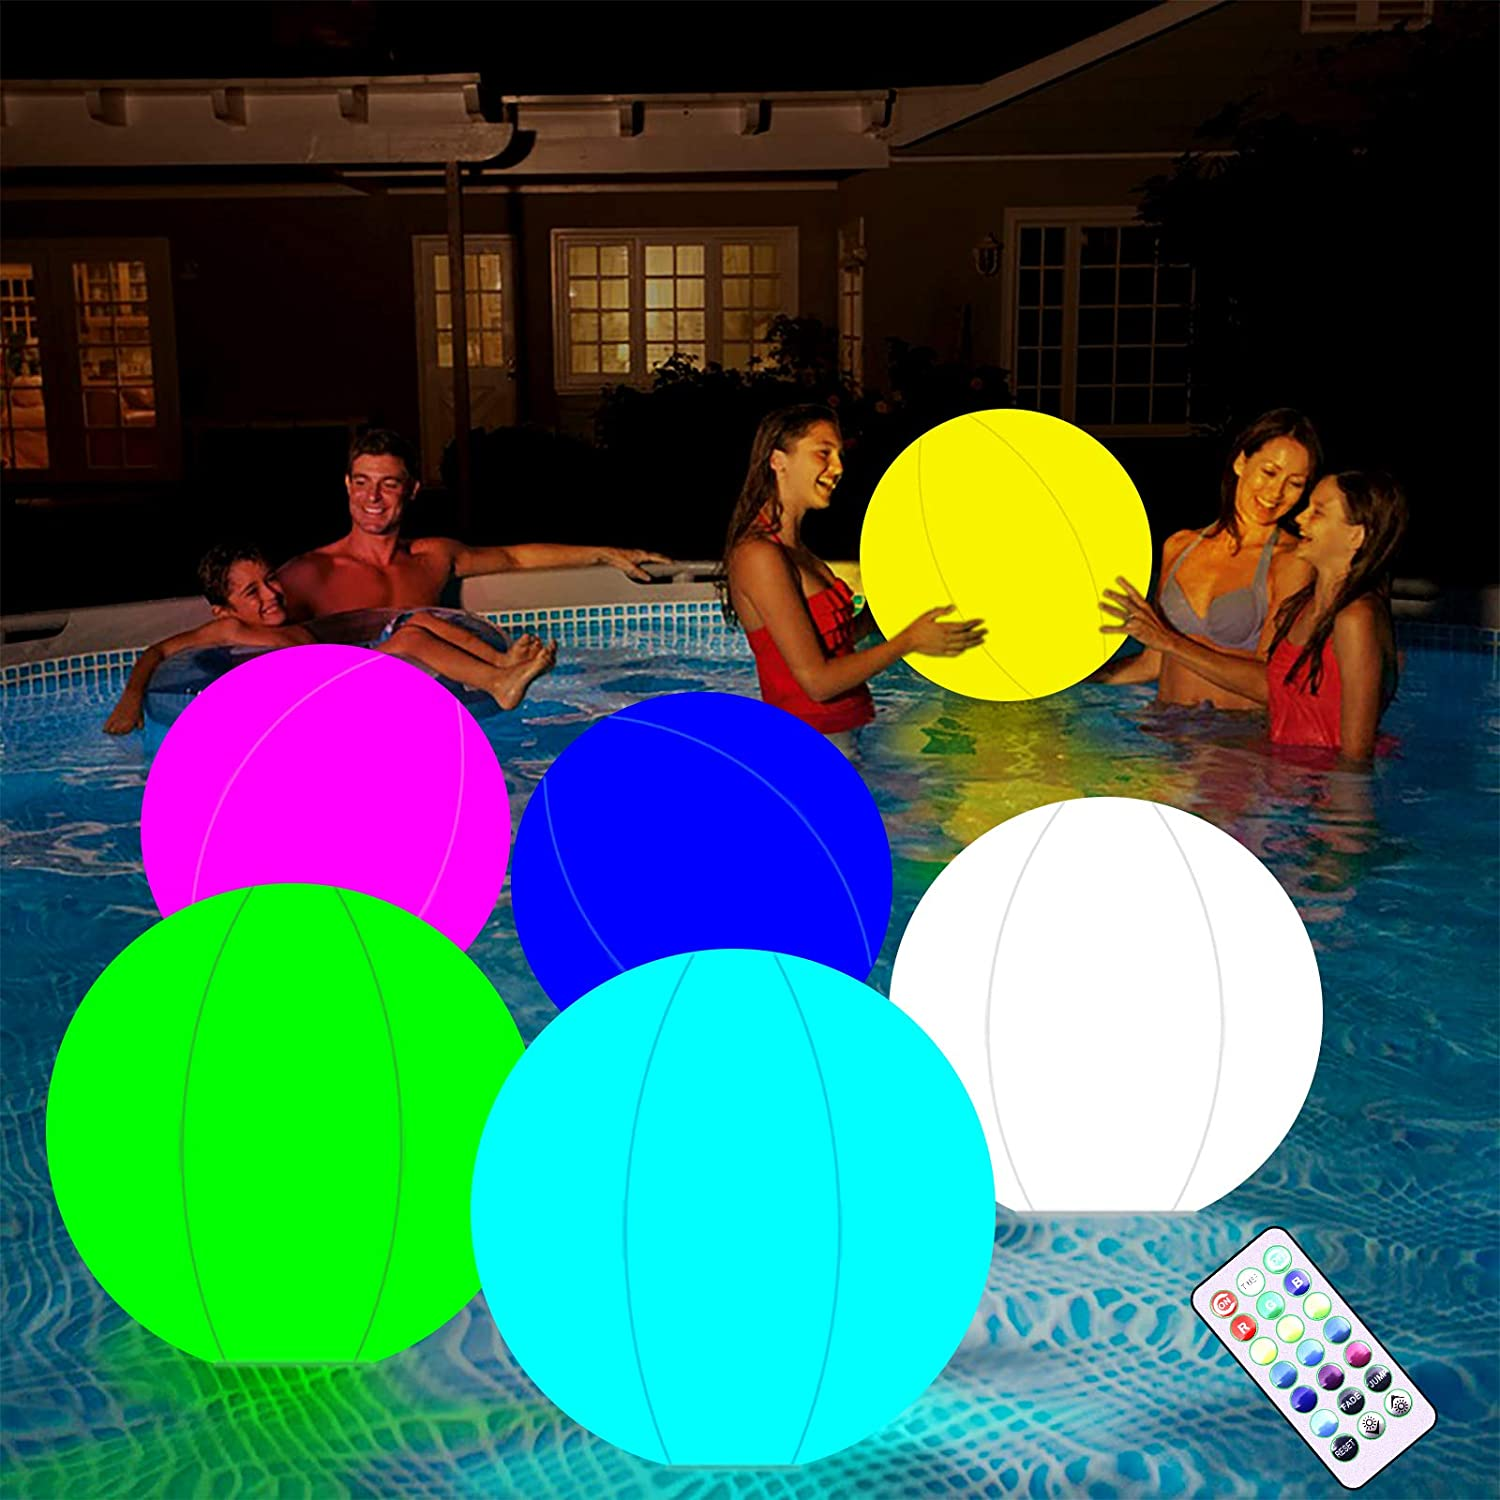 Glow Ball LED Ball Great for Beach Pool Party Outdoor Games and Decorations Generic/Brands Inflatable Glowing Ball Pool Toy 13 Colors Beach Ball 16 Inflatable LED Light Up Party Ball with Remote